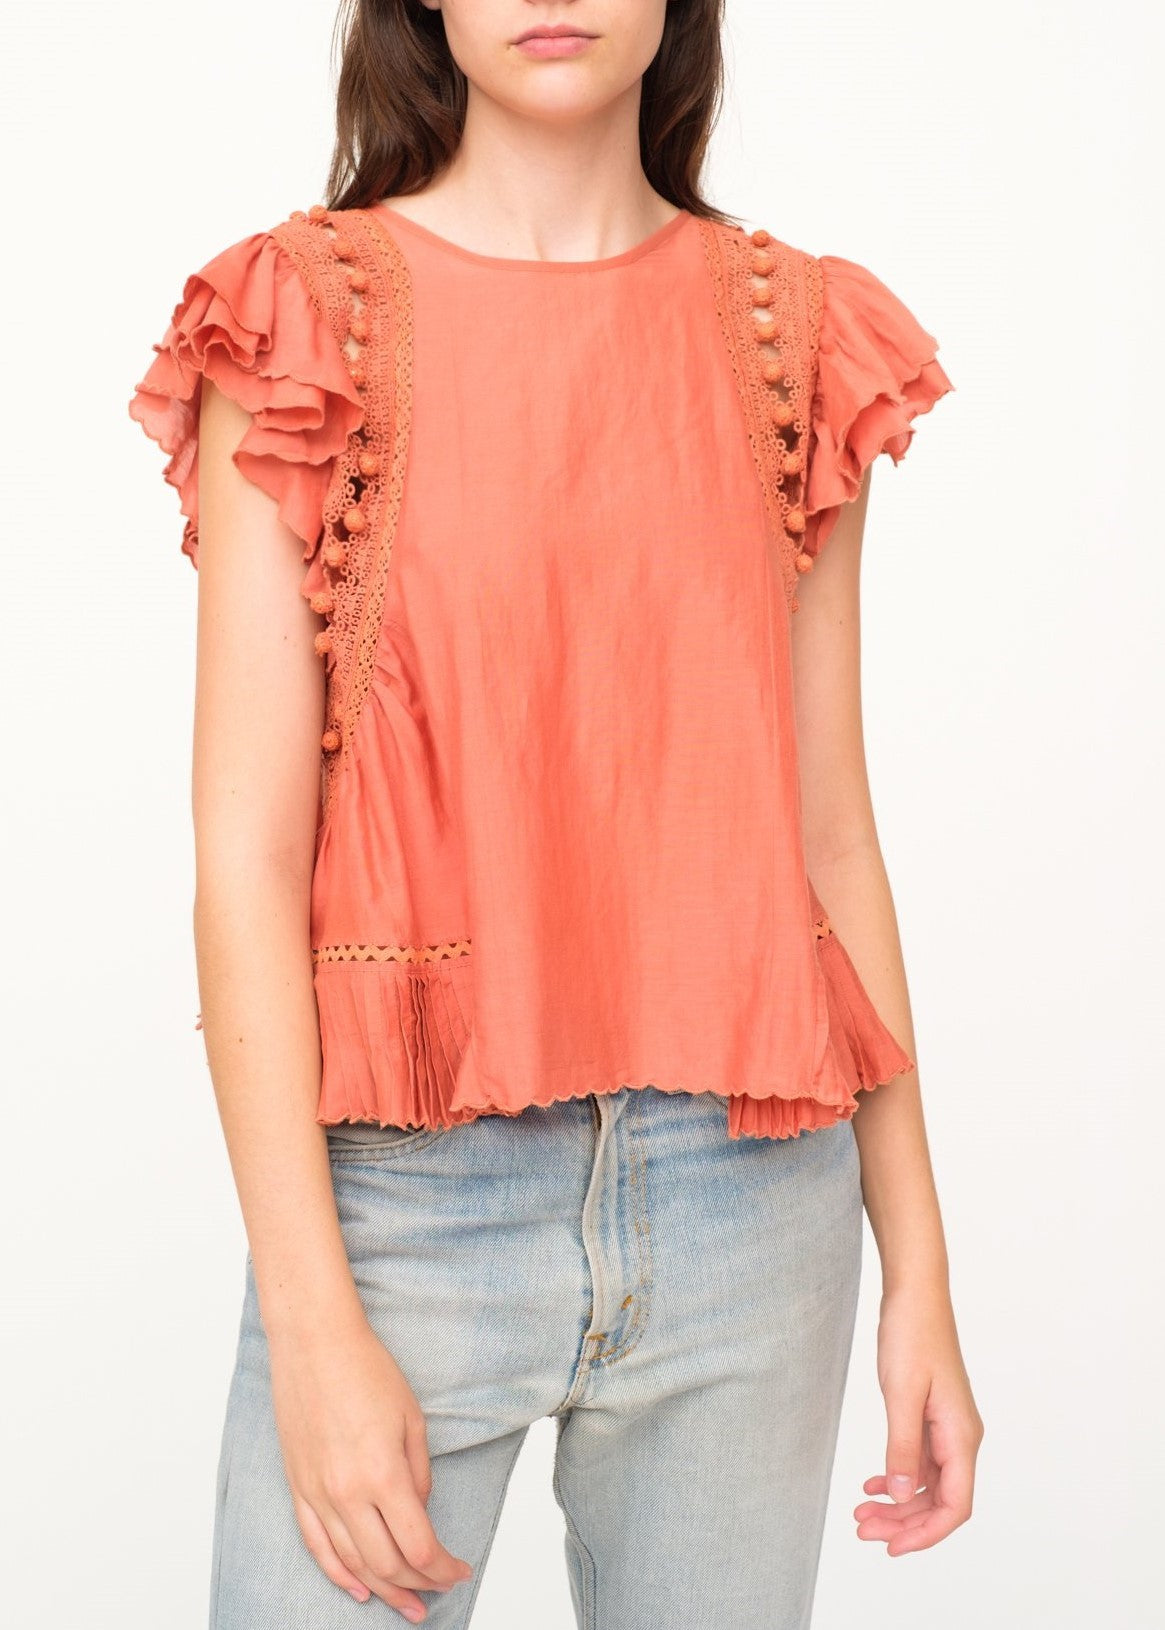 Sea khloe crochet pom pom top salmon